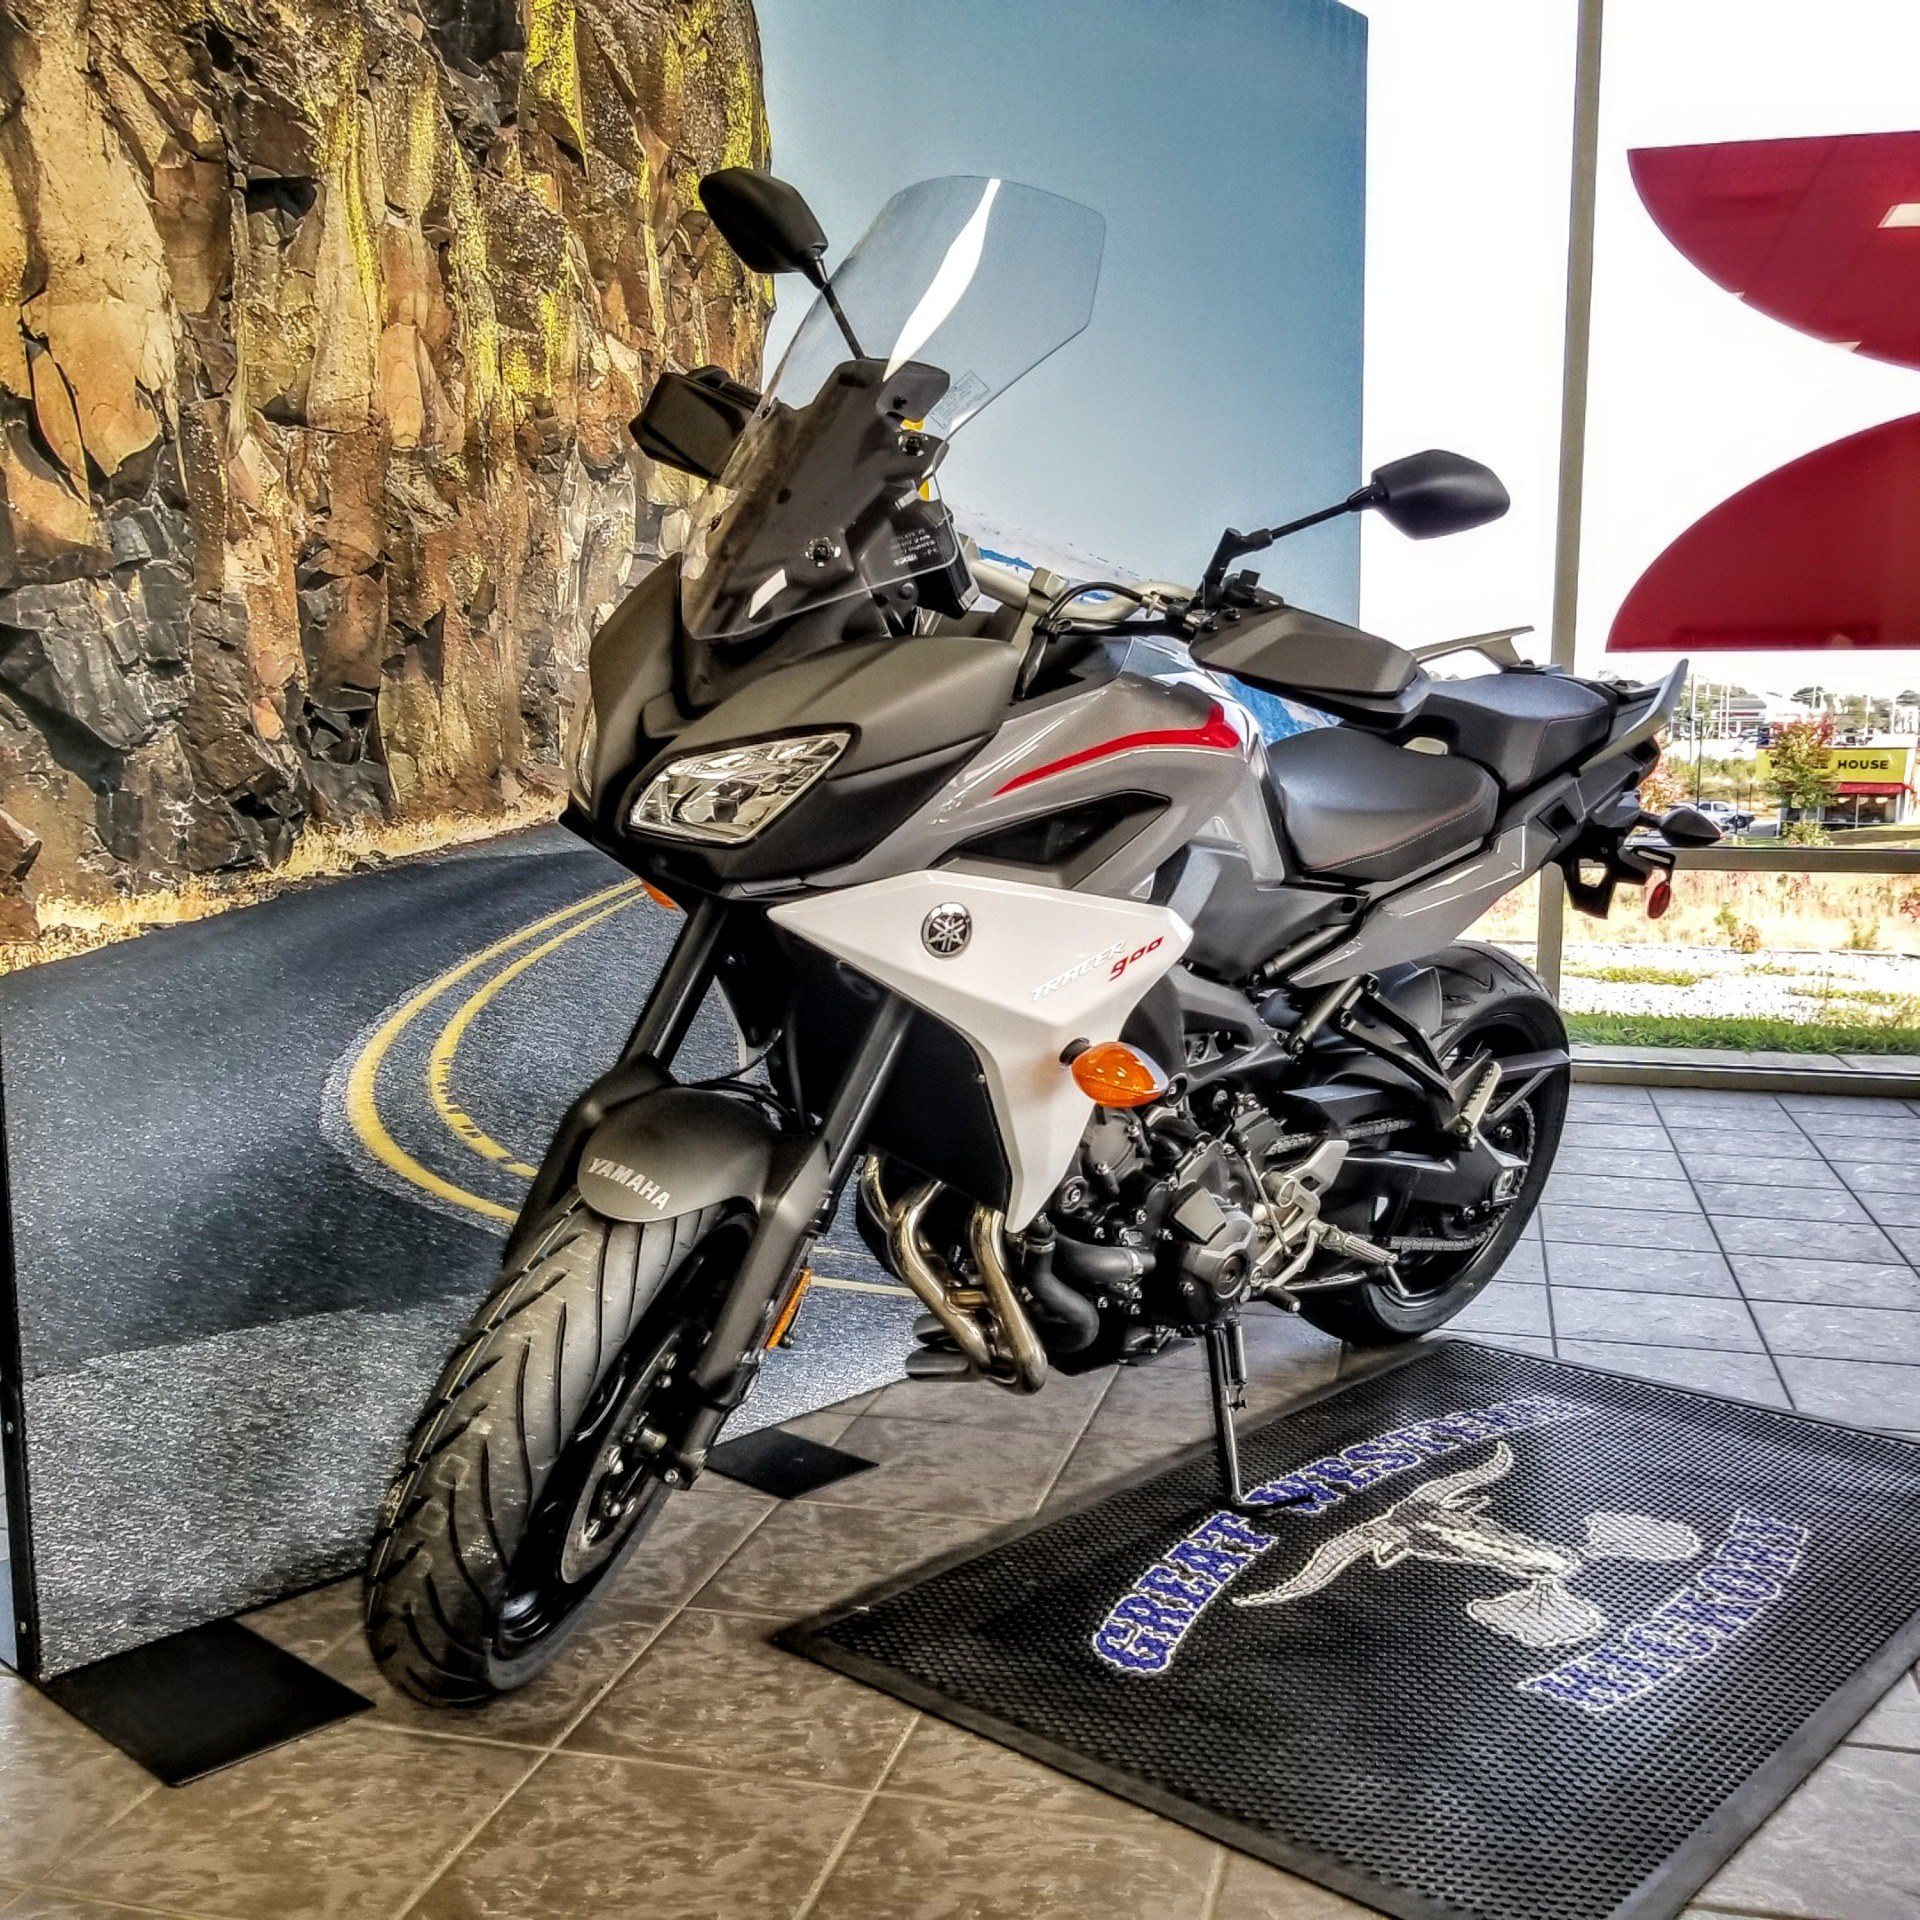 2019 Yamaha Tracer 900 in Hickory, North Carolina - Photo 2